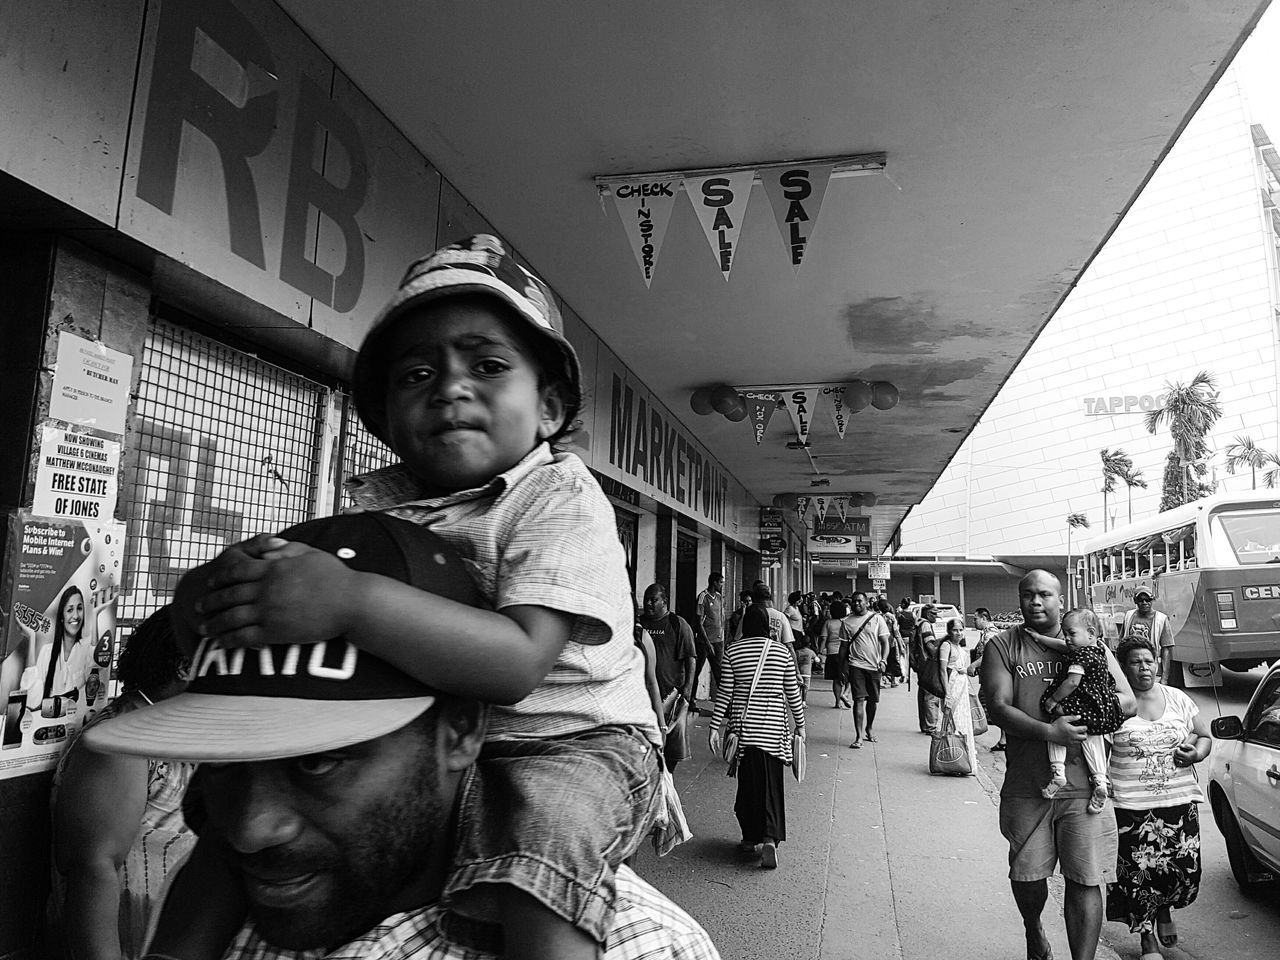 Battle Of The Cities SUVA FIJI ISLANDS Streetphoto_bw City Life Black & White Streetphotography Street Photography Fiji Islands